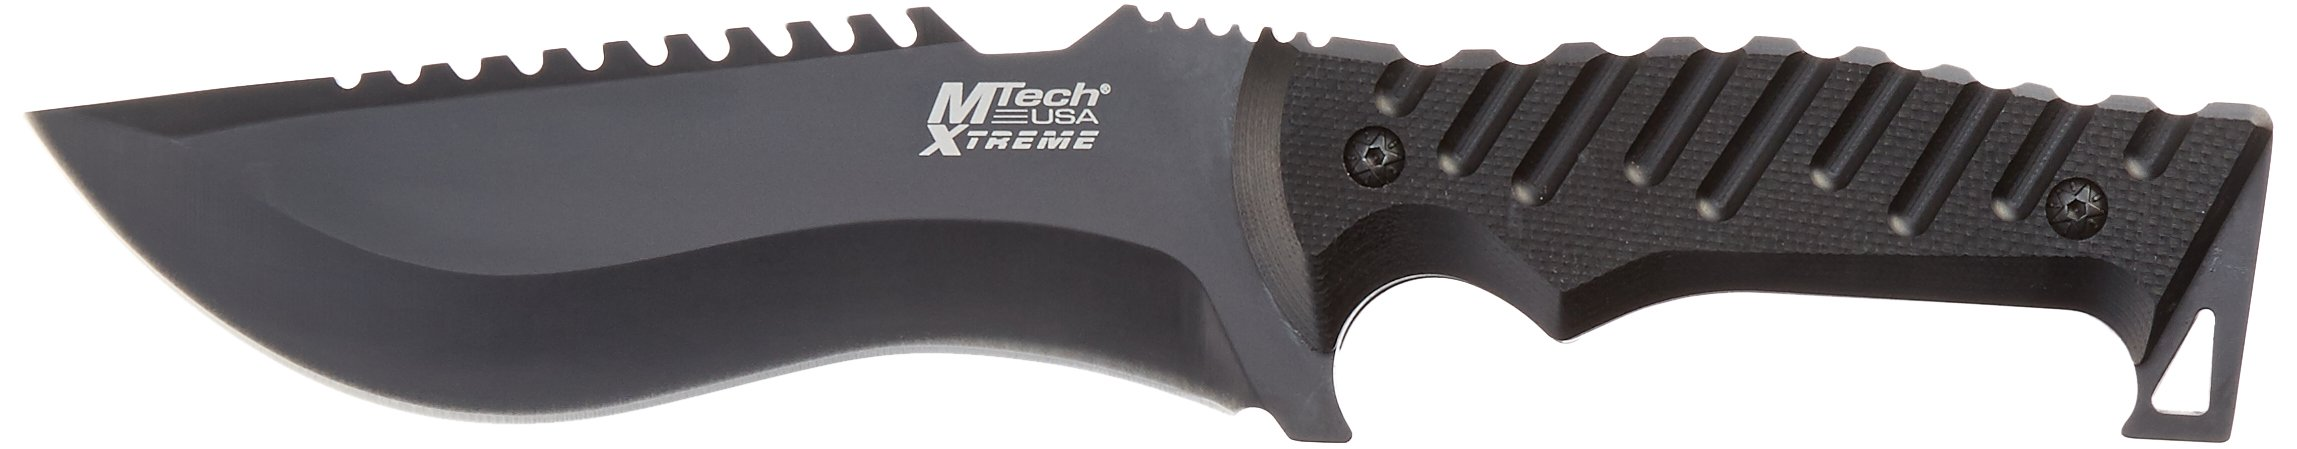 MTECH USA XTREME MX-8119 Fixed Blade Tactical Knife, 11.5'' Overall